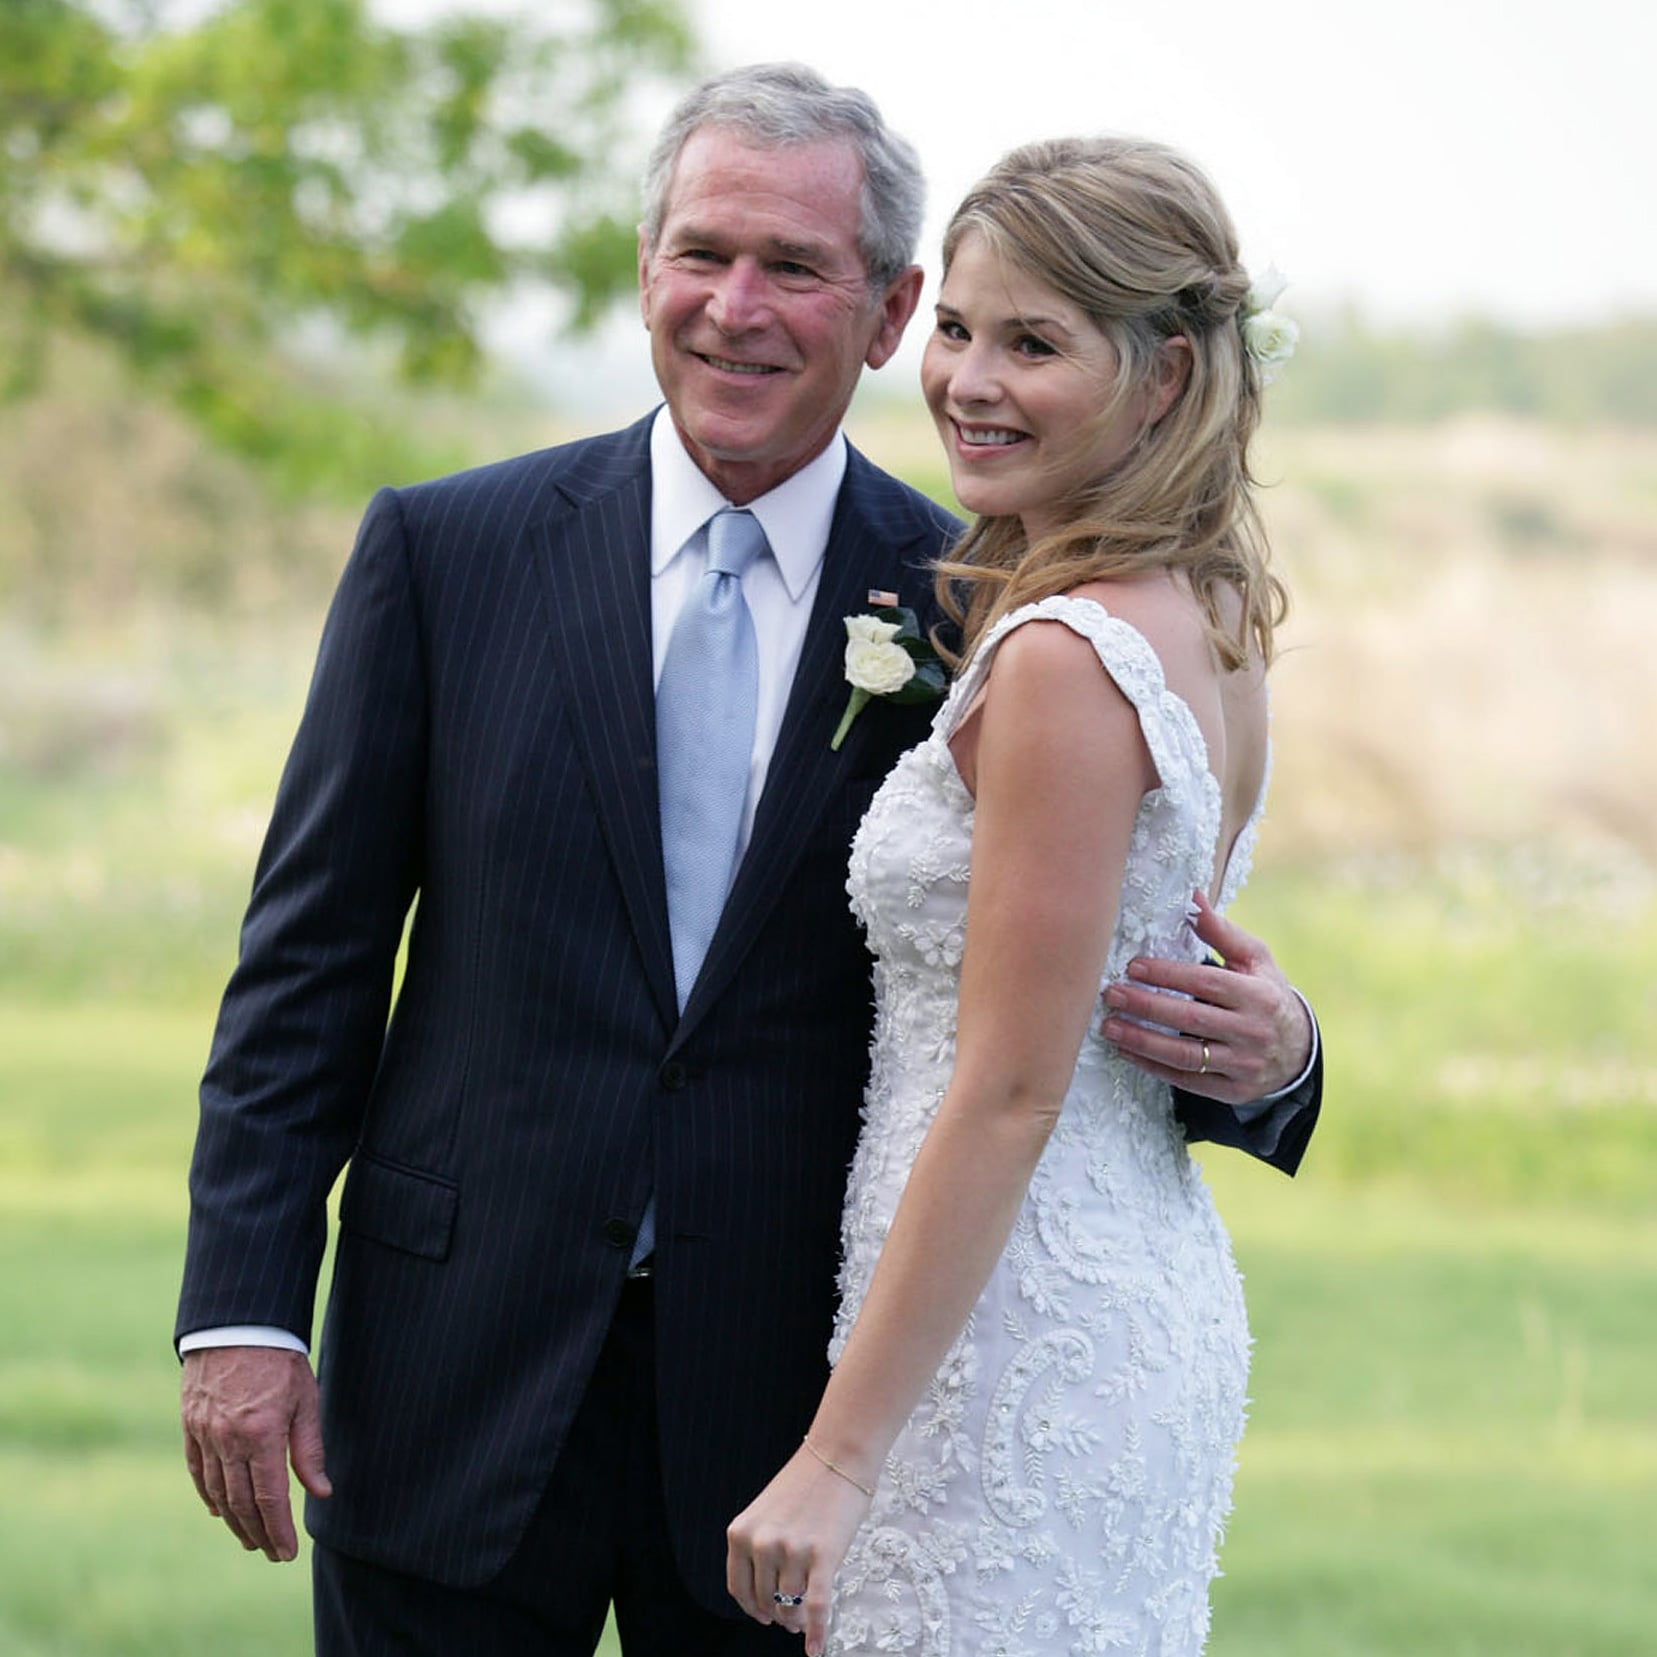 Pictures From Weddings Of American First Daughters Popsugar